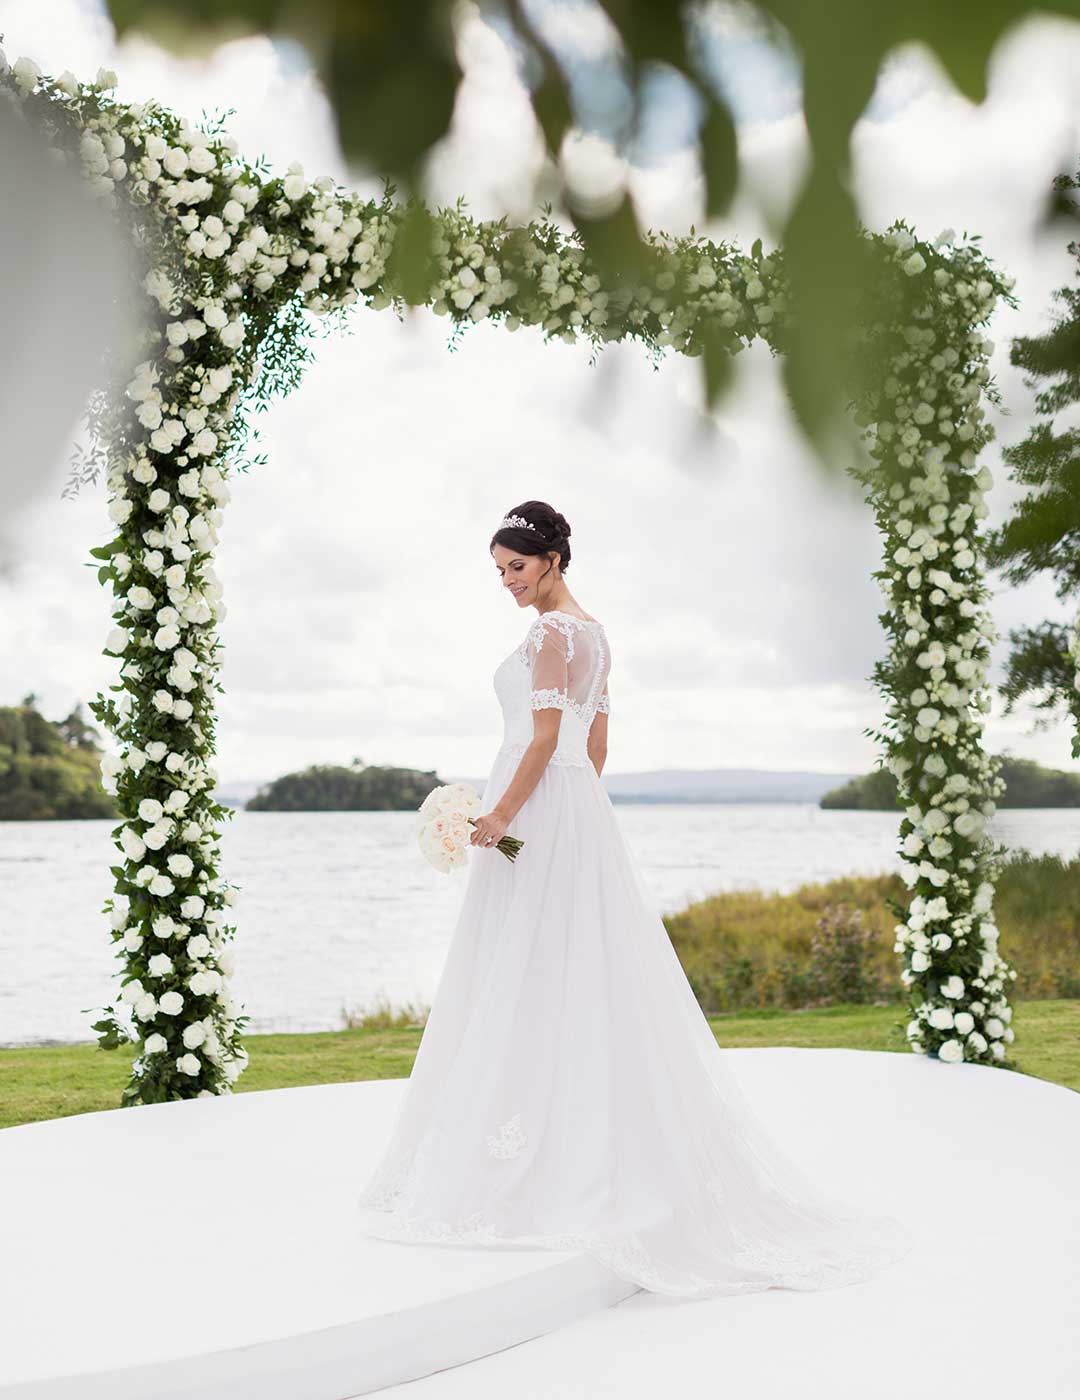 Destination Weddings Ireland, Event Planner in Ireland, Event Management company, Destination wedding, Ashford castle wedding